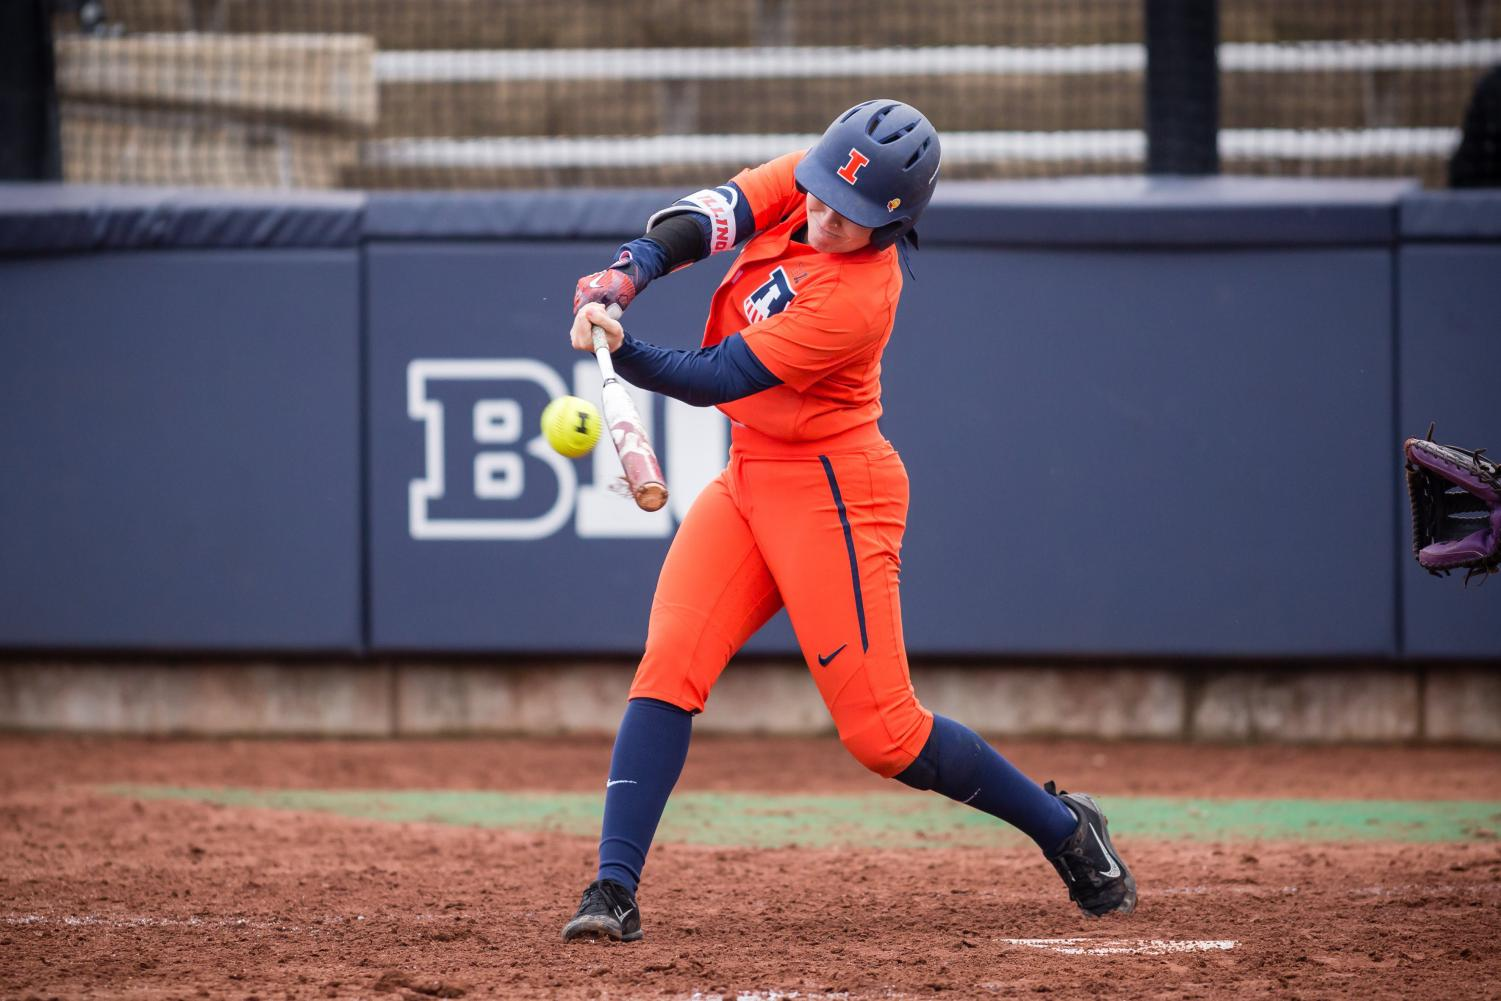 Illinois outfielder Maddi Doane (14) hits the ball during the game against Northwestern at Eichelberger Field on Wednesday, Mar. 28, 2018.